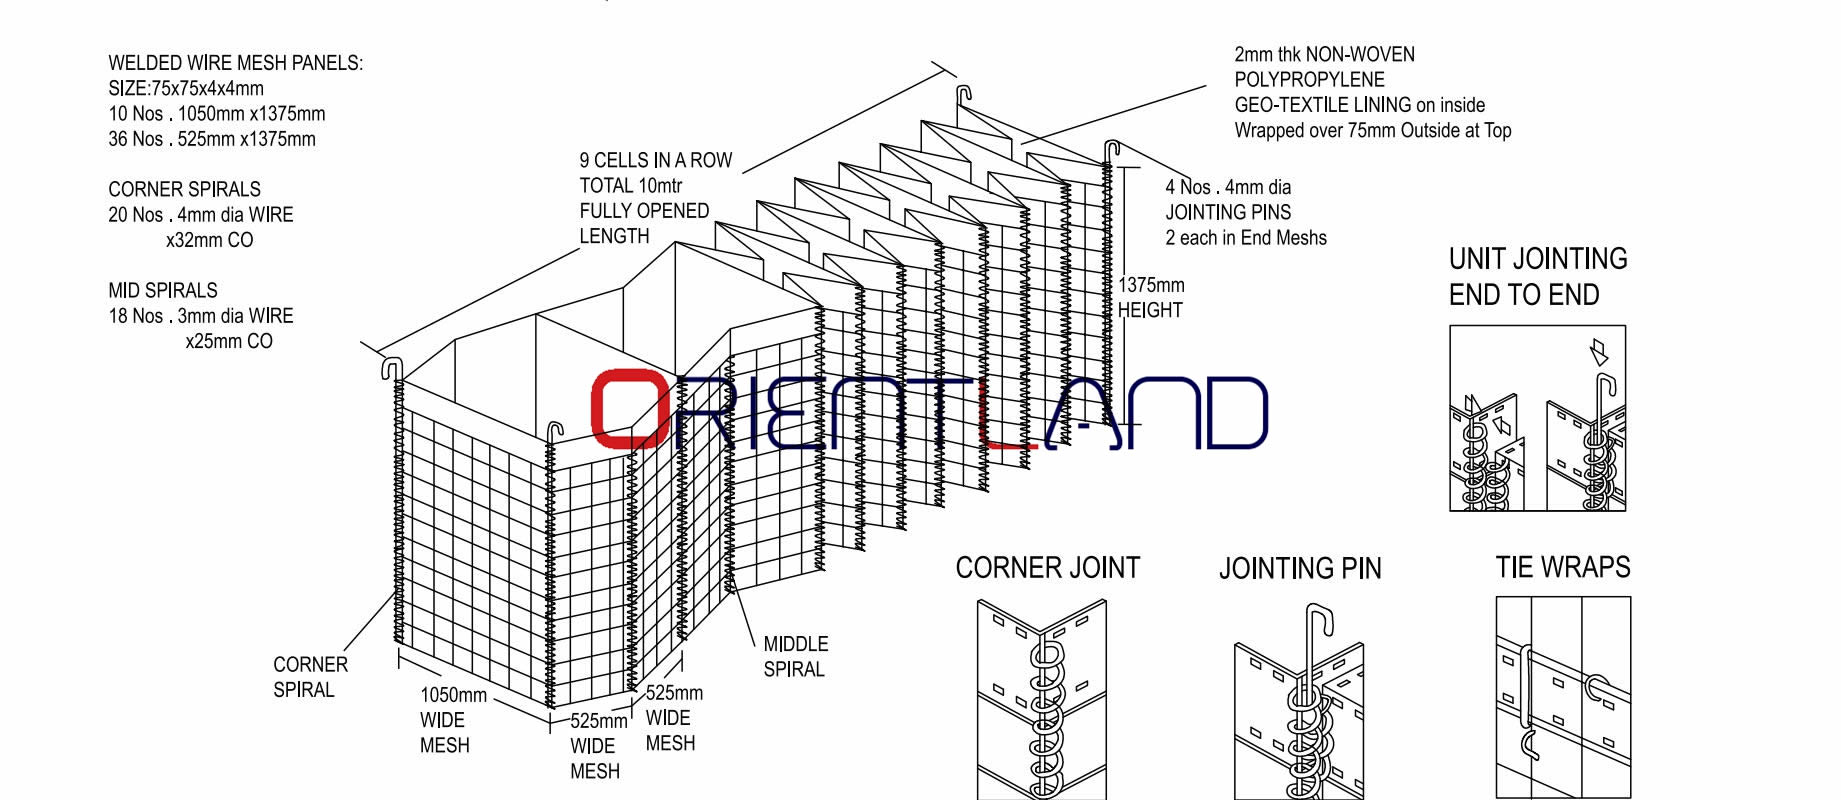 Bastion Barrier Orientland Wire Mesh Products Co Limited Nitrous System Wiring Diagram A New Of Hesco Developed Specially For Military Use Is Deployed From Container Which Dragged Along The Line Ground Where